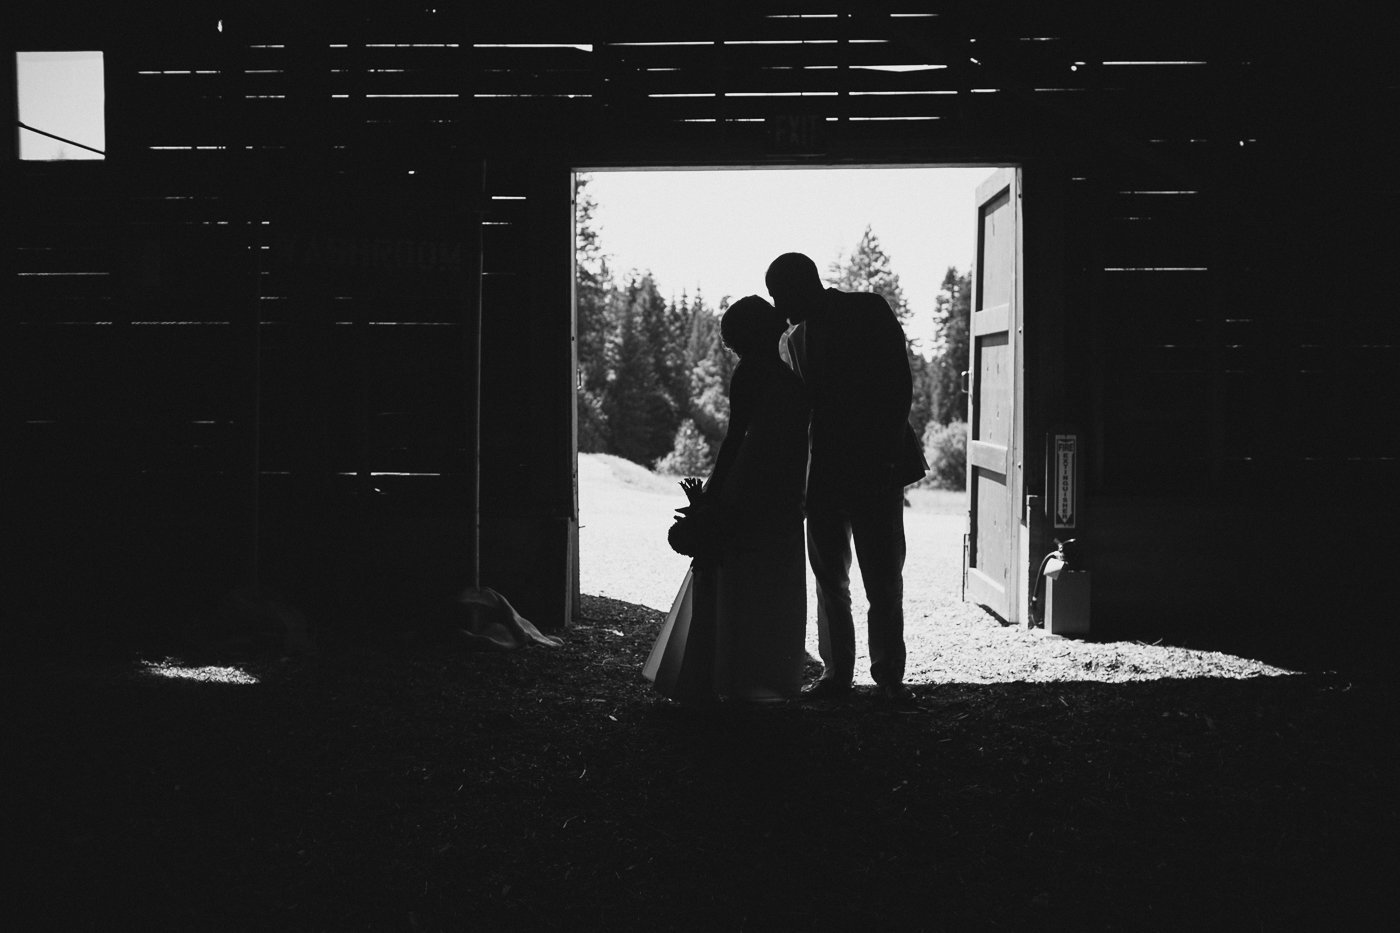 boise_wedding_photographer0010-2